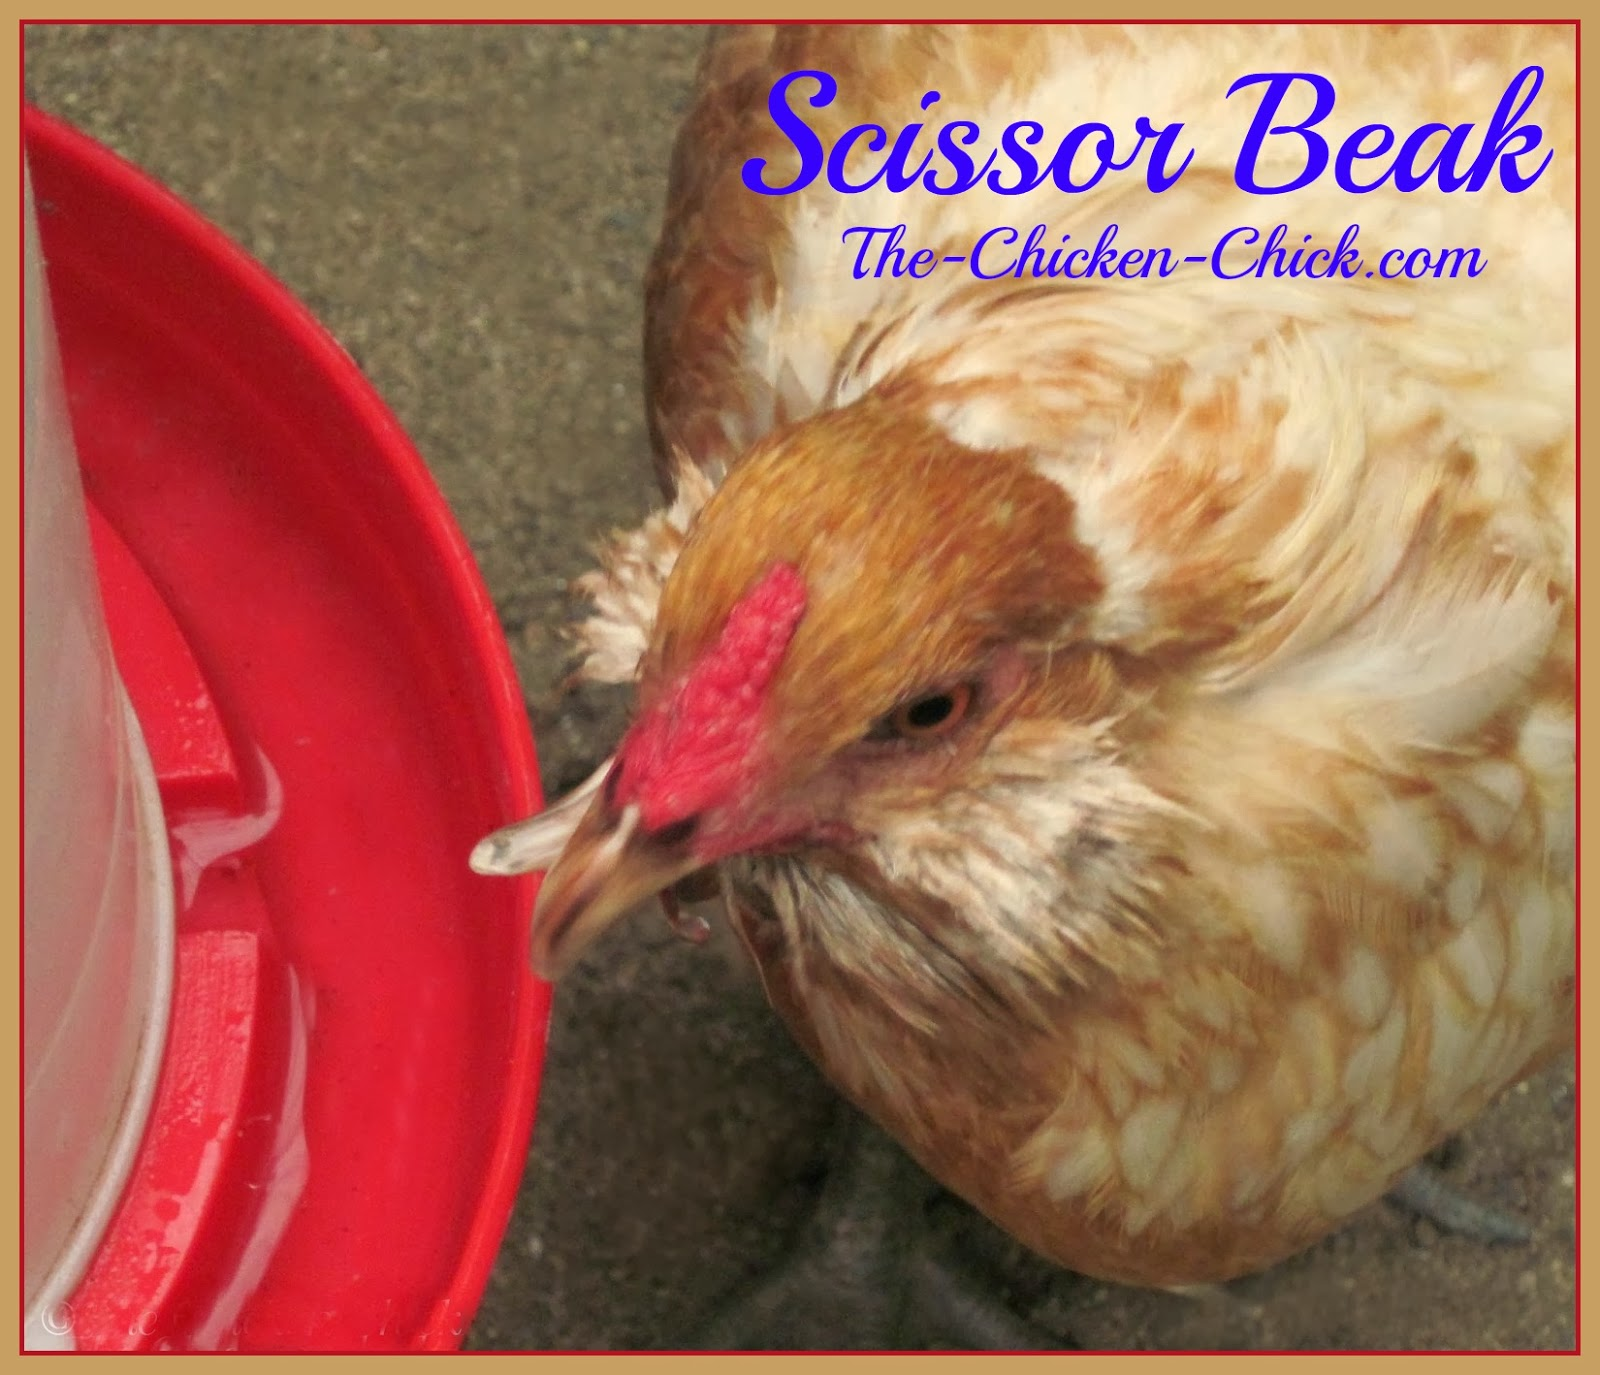 Scissor beak, aka: crossed beak or crooked beak, is a condition characterized by the top and bottom beak halves failing to align properly. It can be caused by genetics or the inability to maintain the beak's length and shape by normal honing on rocks or other hard surfaces. Scissor beak is not an automatic bid for euthanasia; most chickens with scissor beak can live normal, happy lives with a few minor accommodations. Scissor beak in new chicks can be very subtle as with my Easter Egger, Ethel. It ordinarily worsens over time.